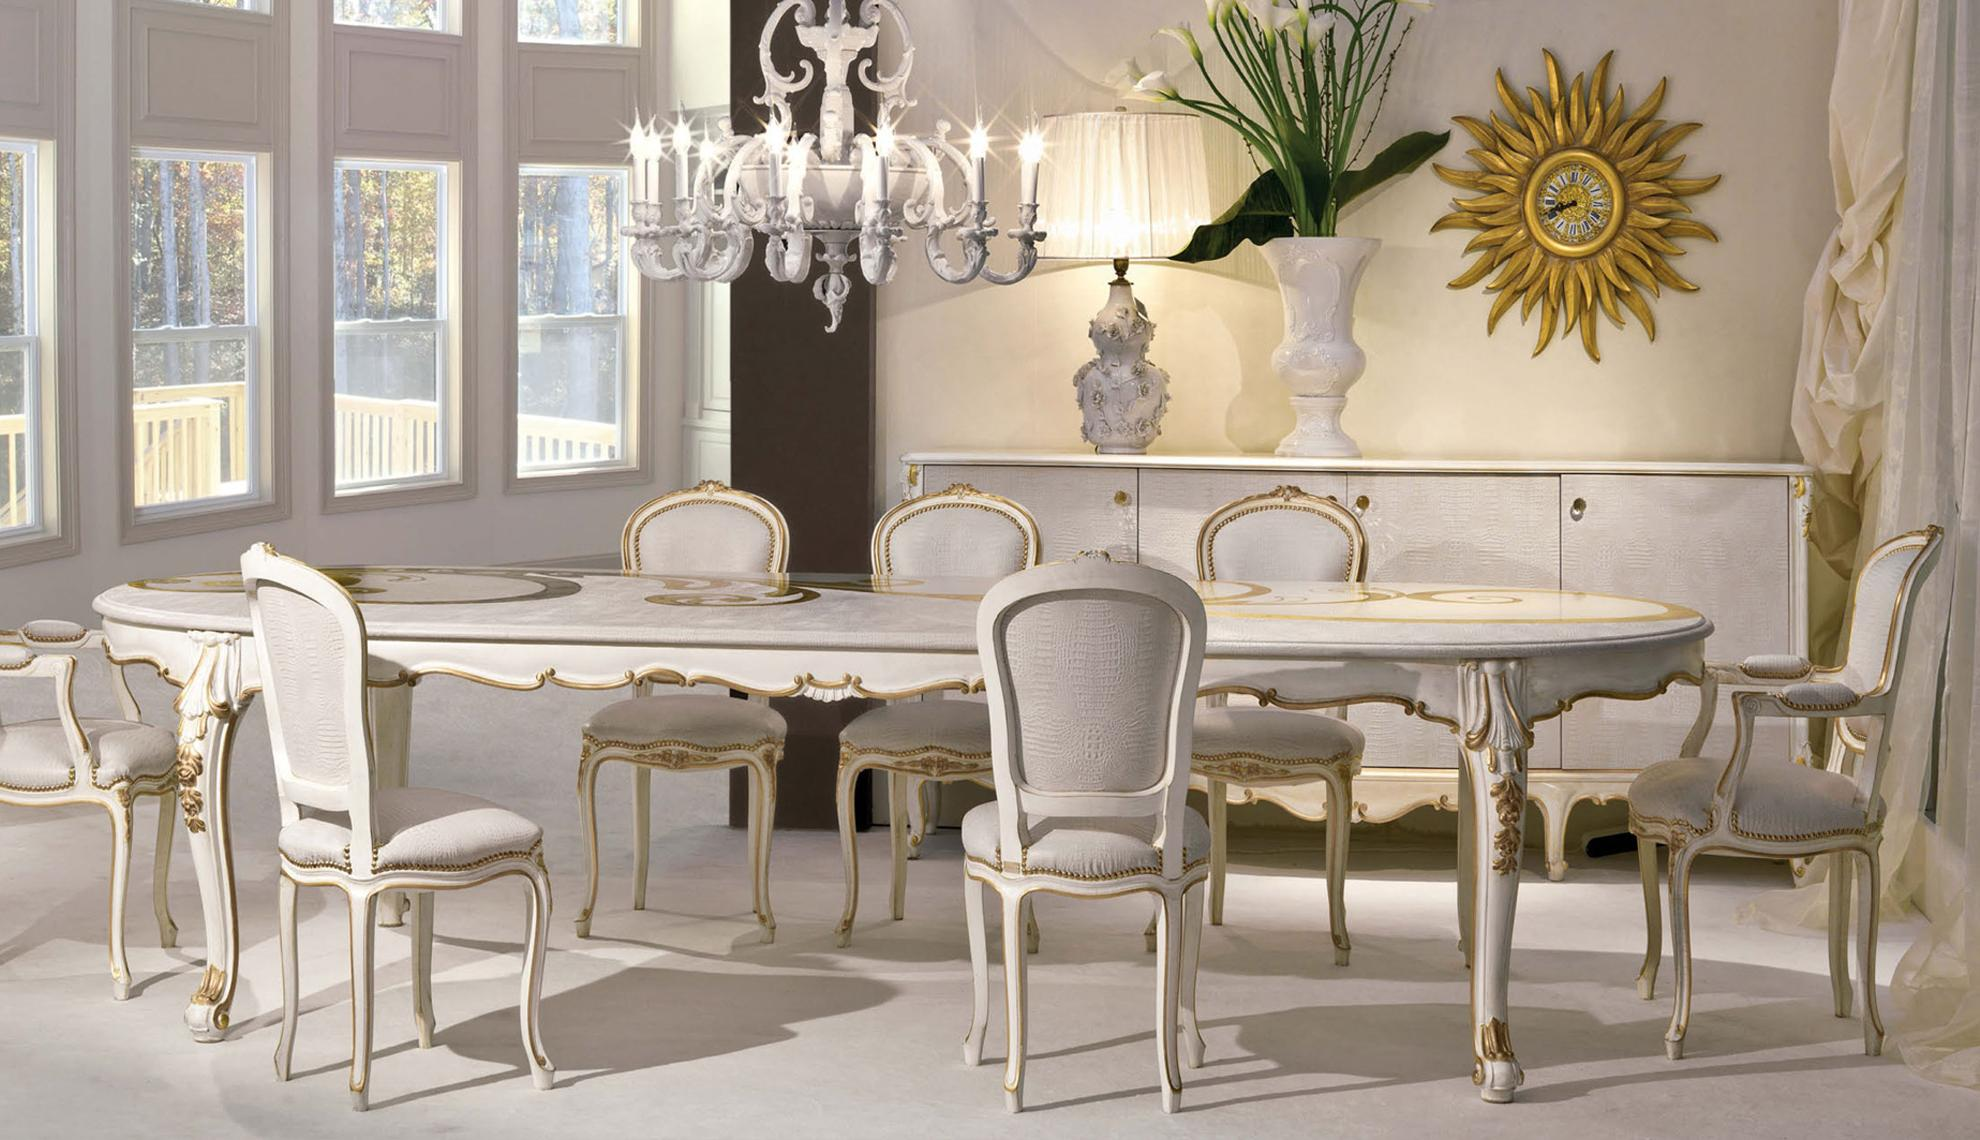 Dining Room Table and Chairs Ideas with